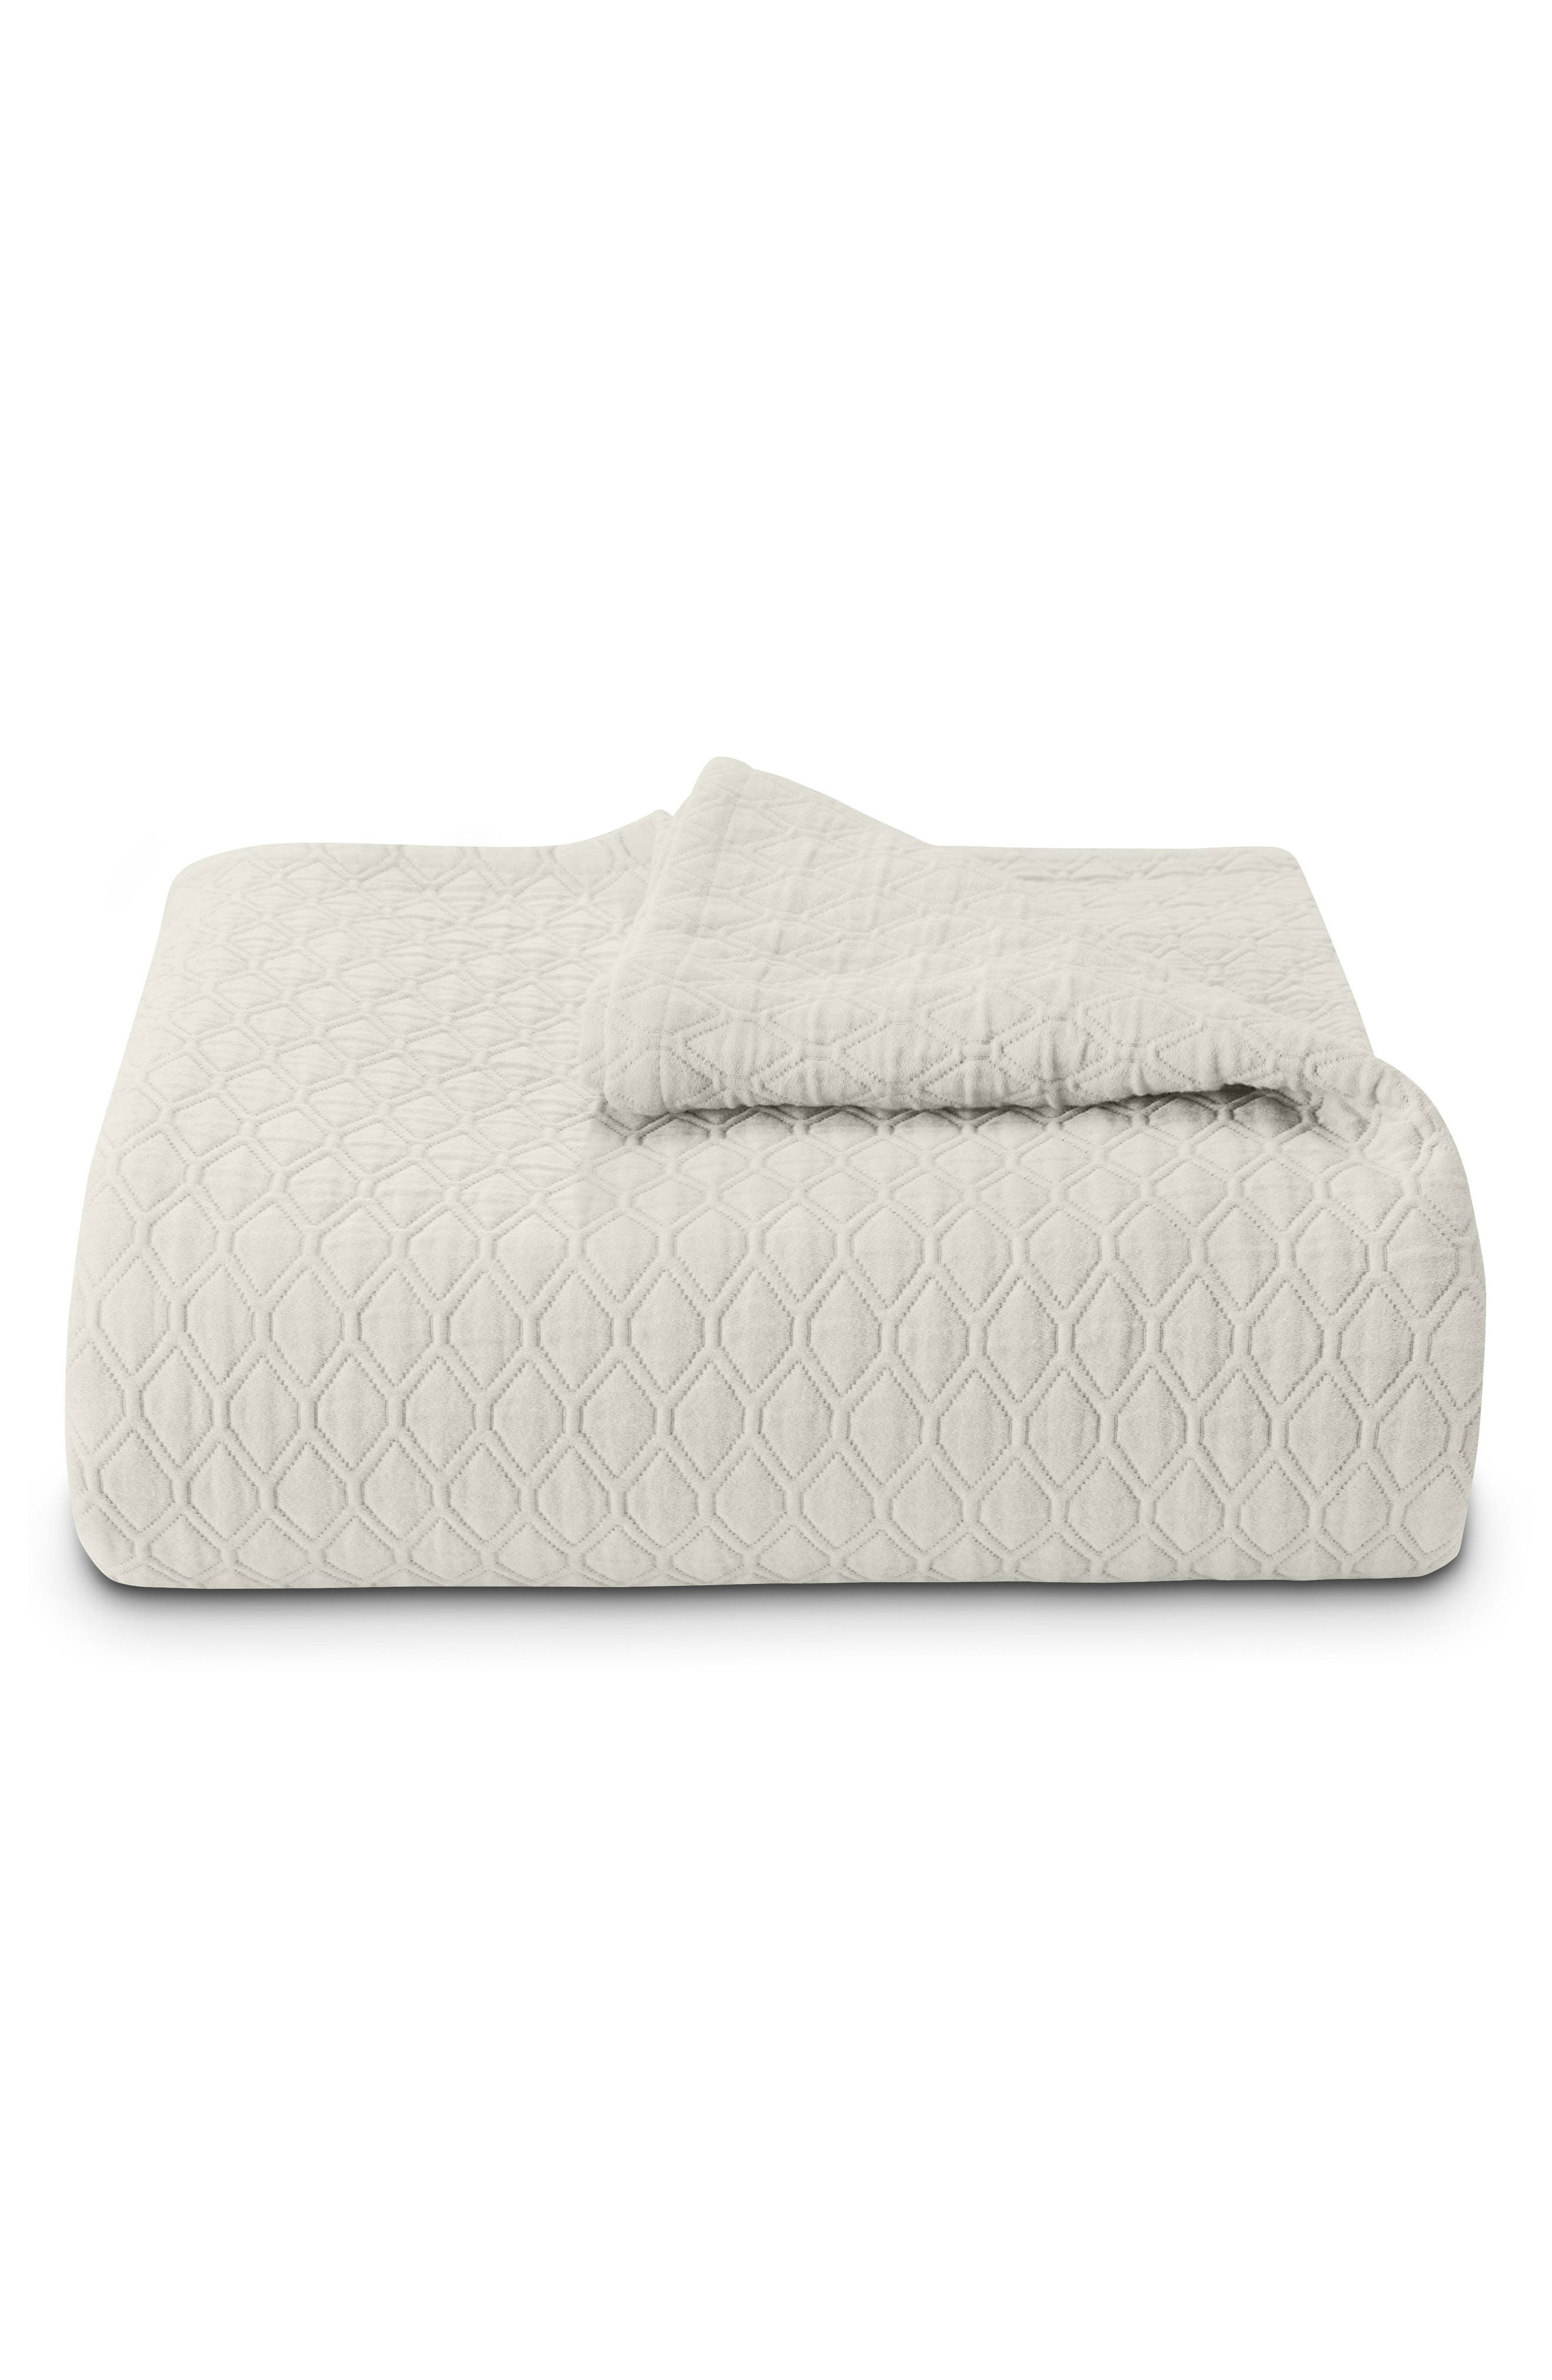 Vera Wang Puckered Diamond Matelassé Coverlet